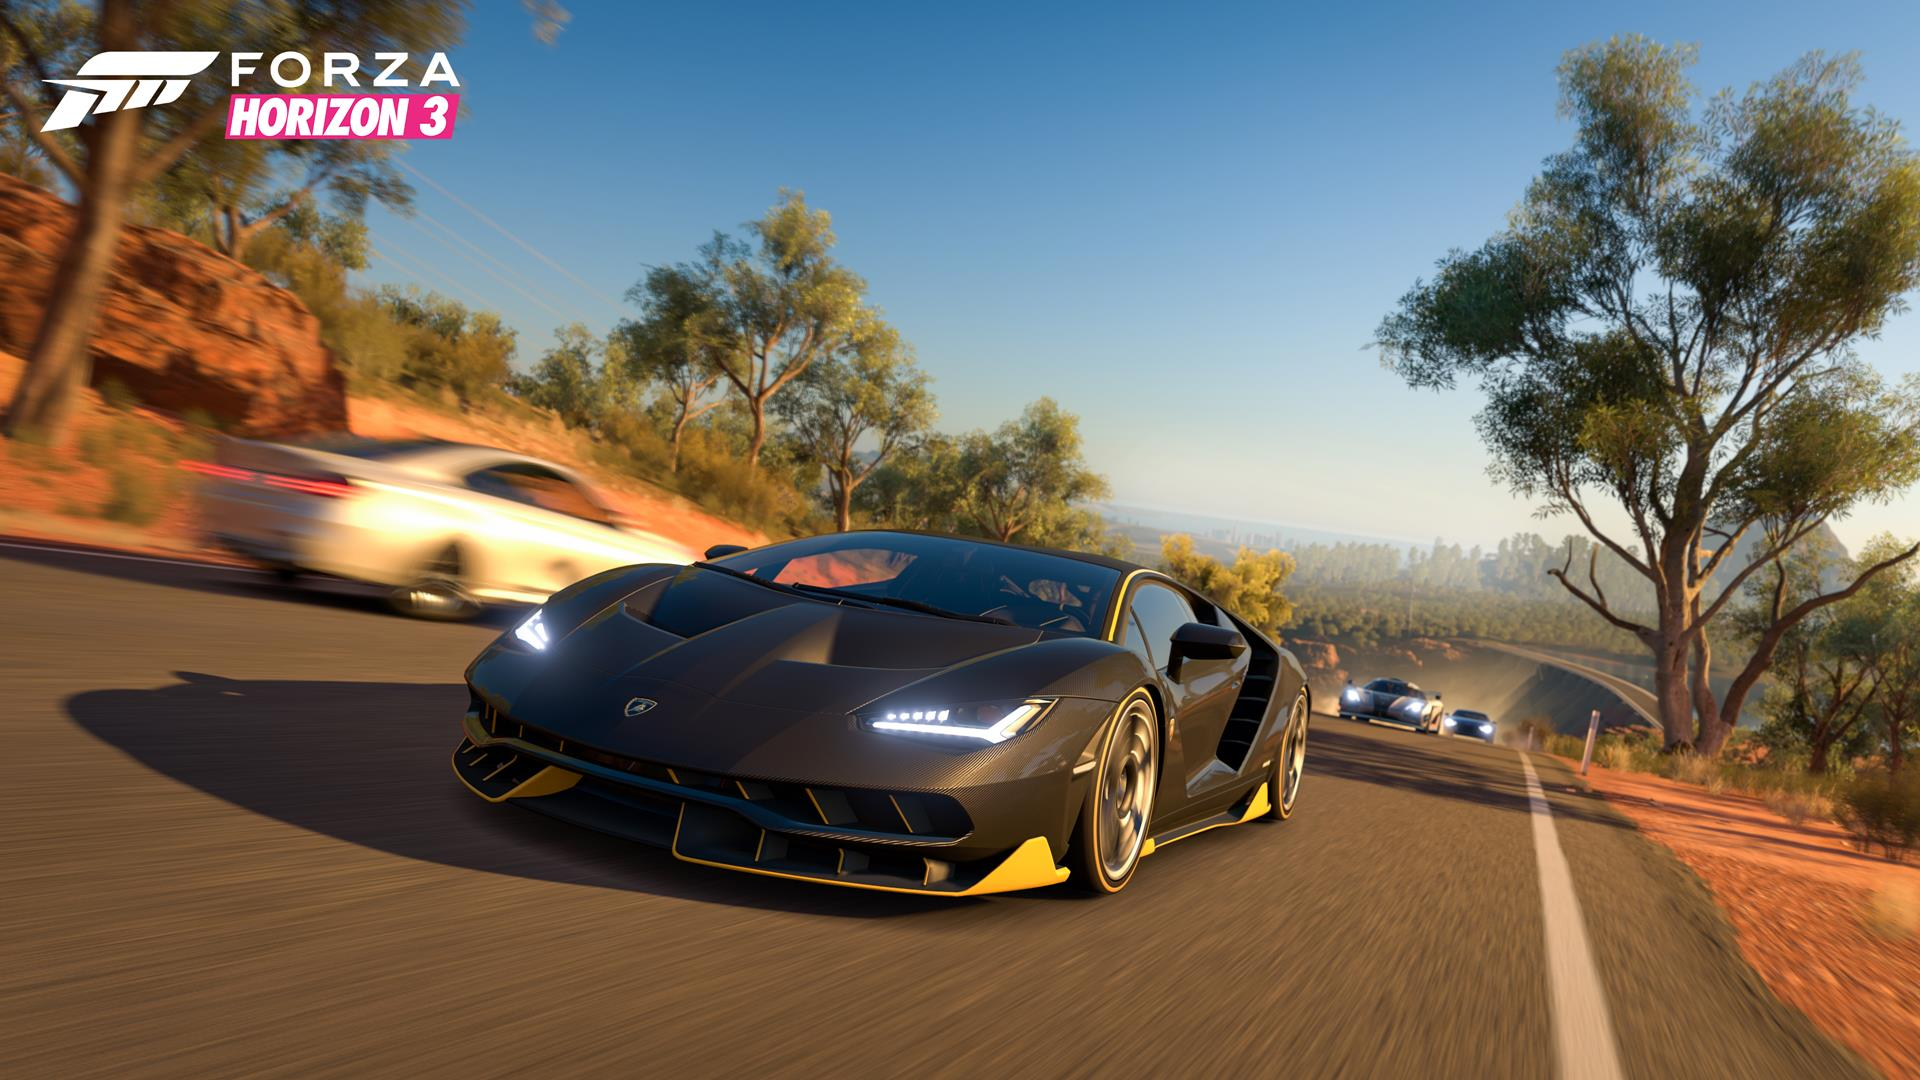 Forza Horizon 3 Uses Voxel-Based GI, Playground Simulated